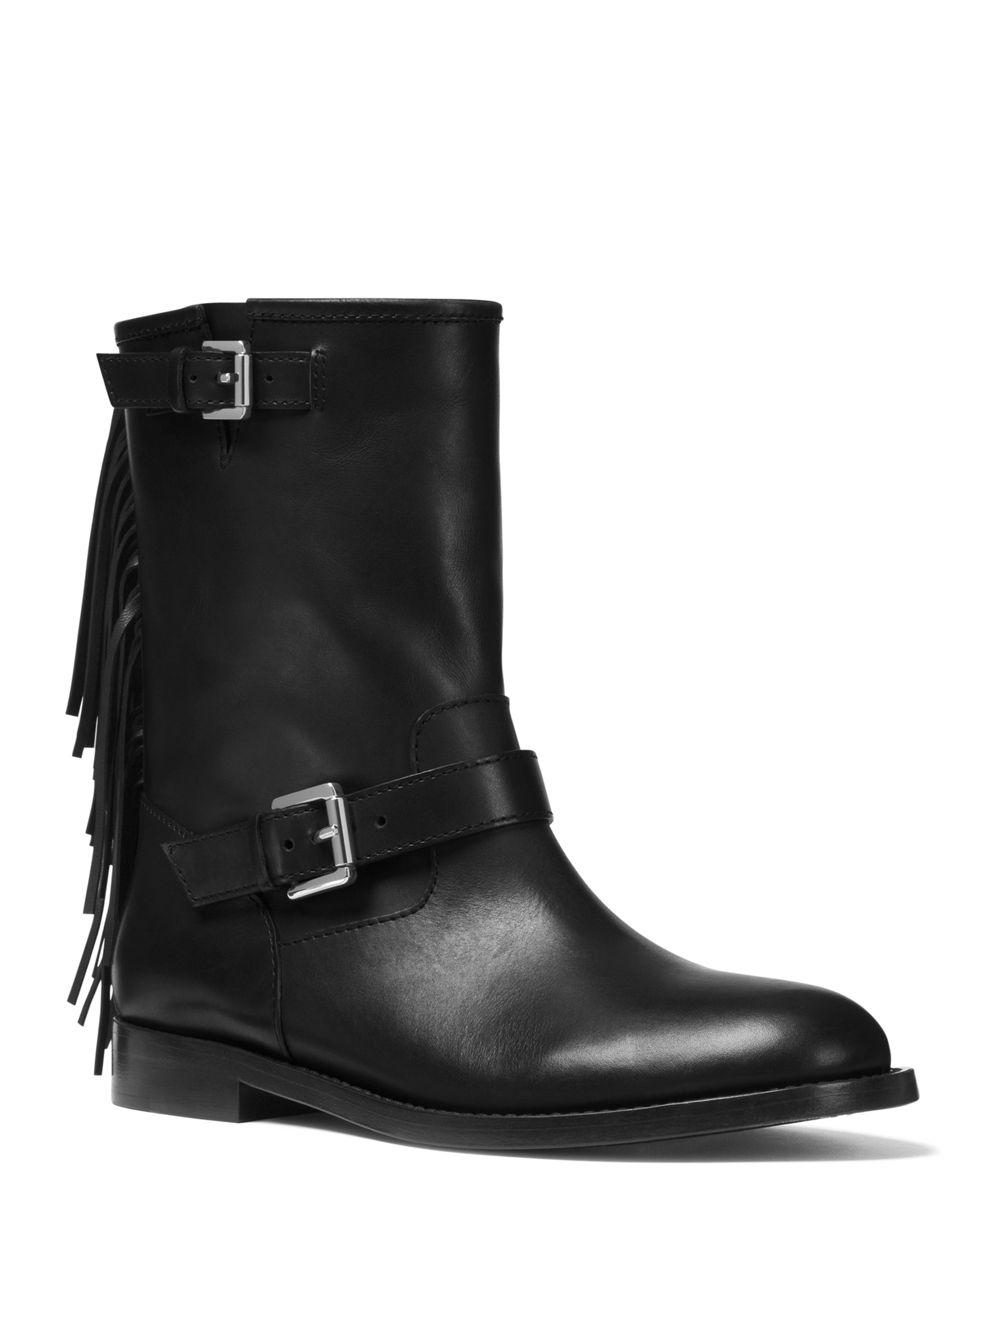 b062fa4c4f7c Lyst - Michael Kors Ingrid Leather Boots in Black - Save 50%